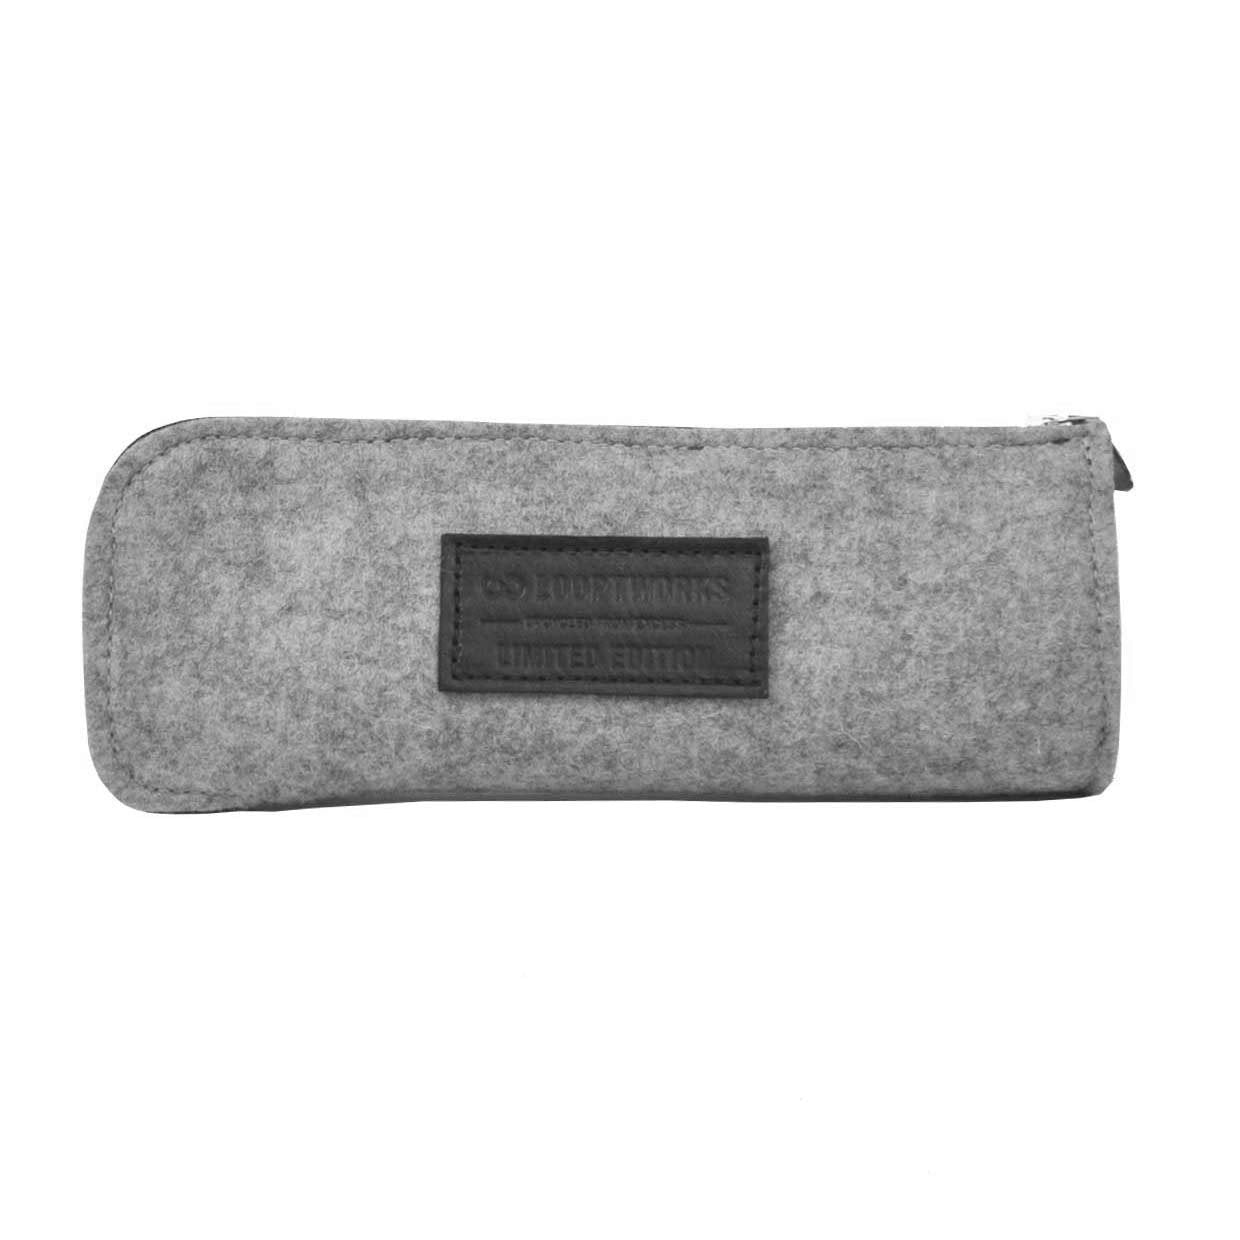 Felt & Leather Pencil Case - Brown Accessories - Looptworks